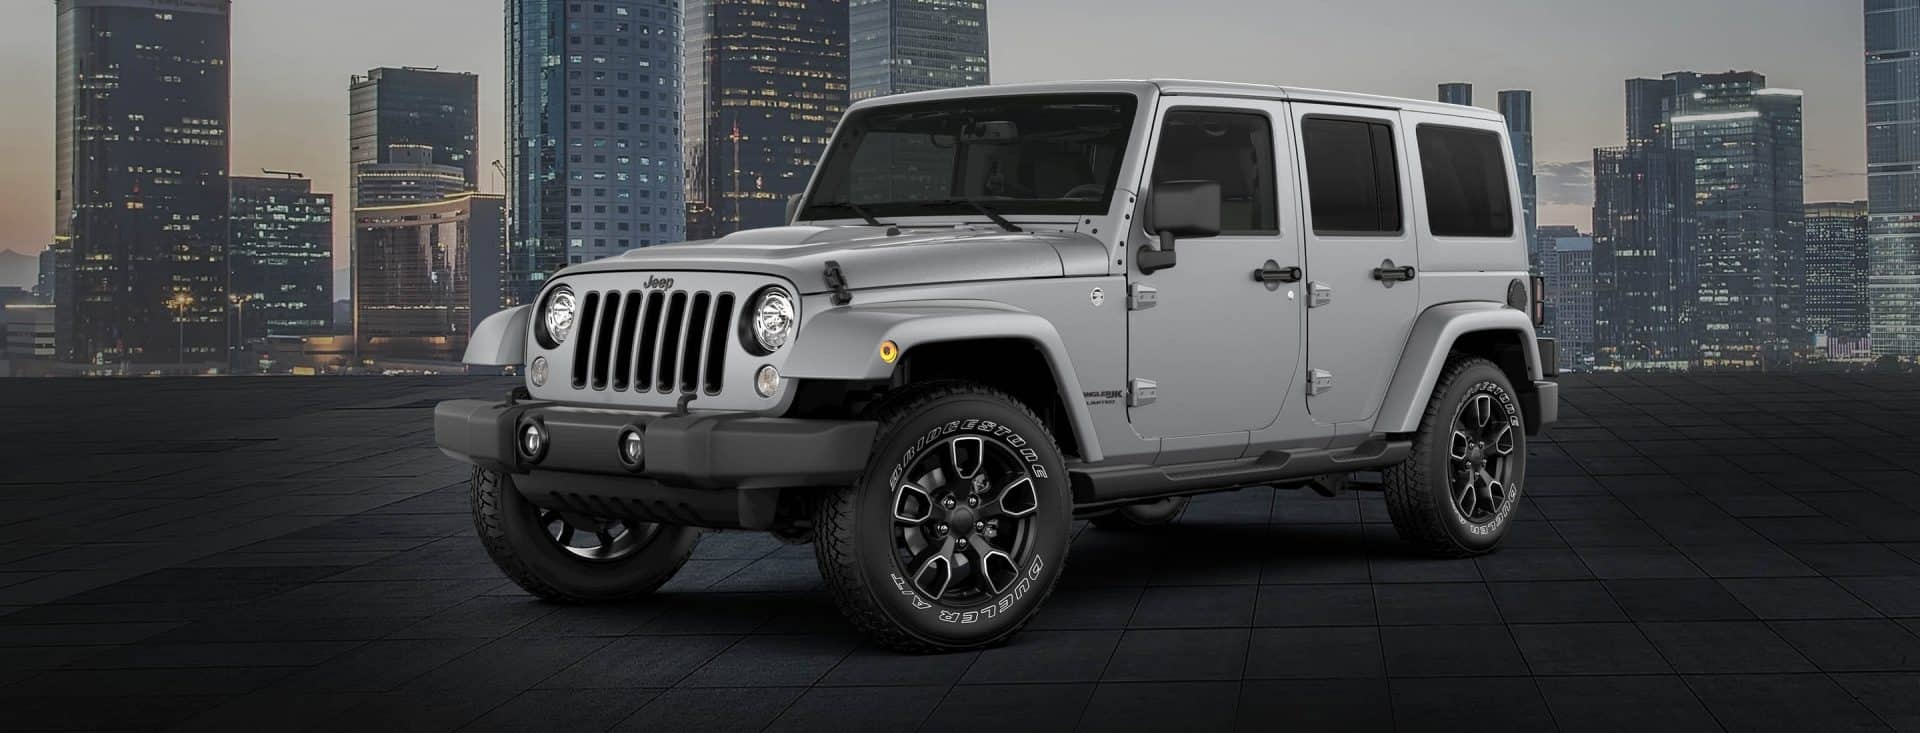 2018 Jeep Wrangler JK Altitude Limited Edition